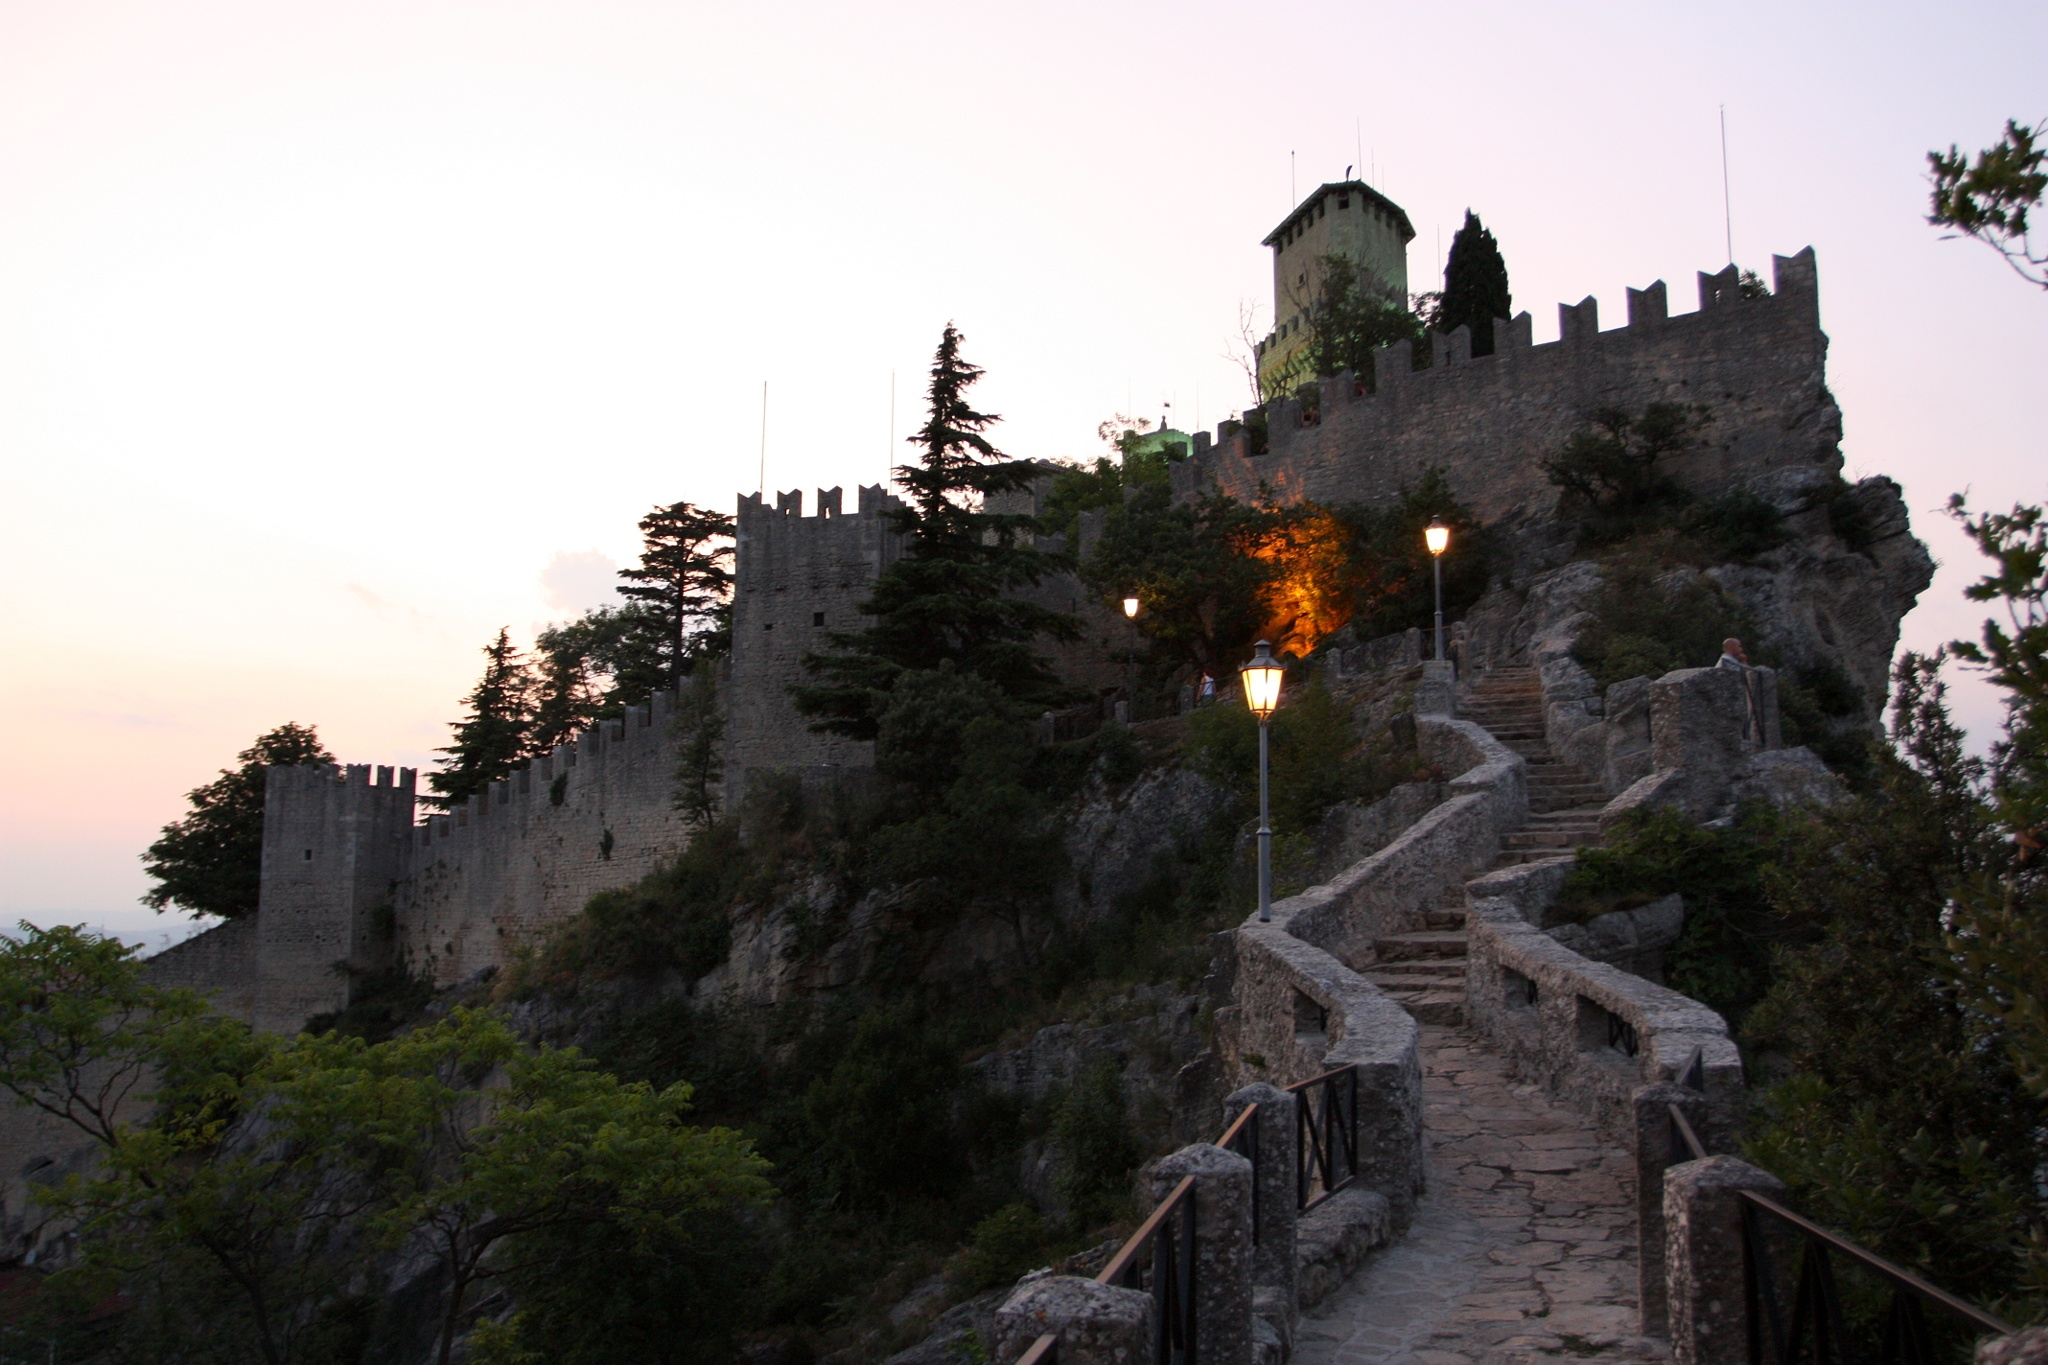 First Tower, Passo delle Streghe, San Marino by Andrei Snitko